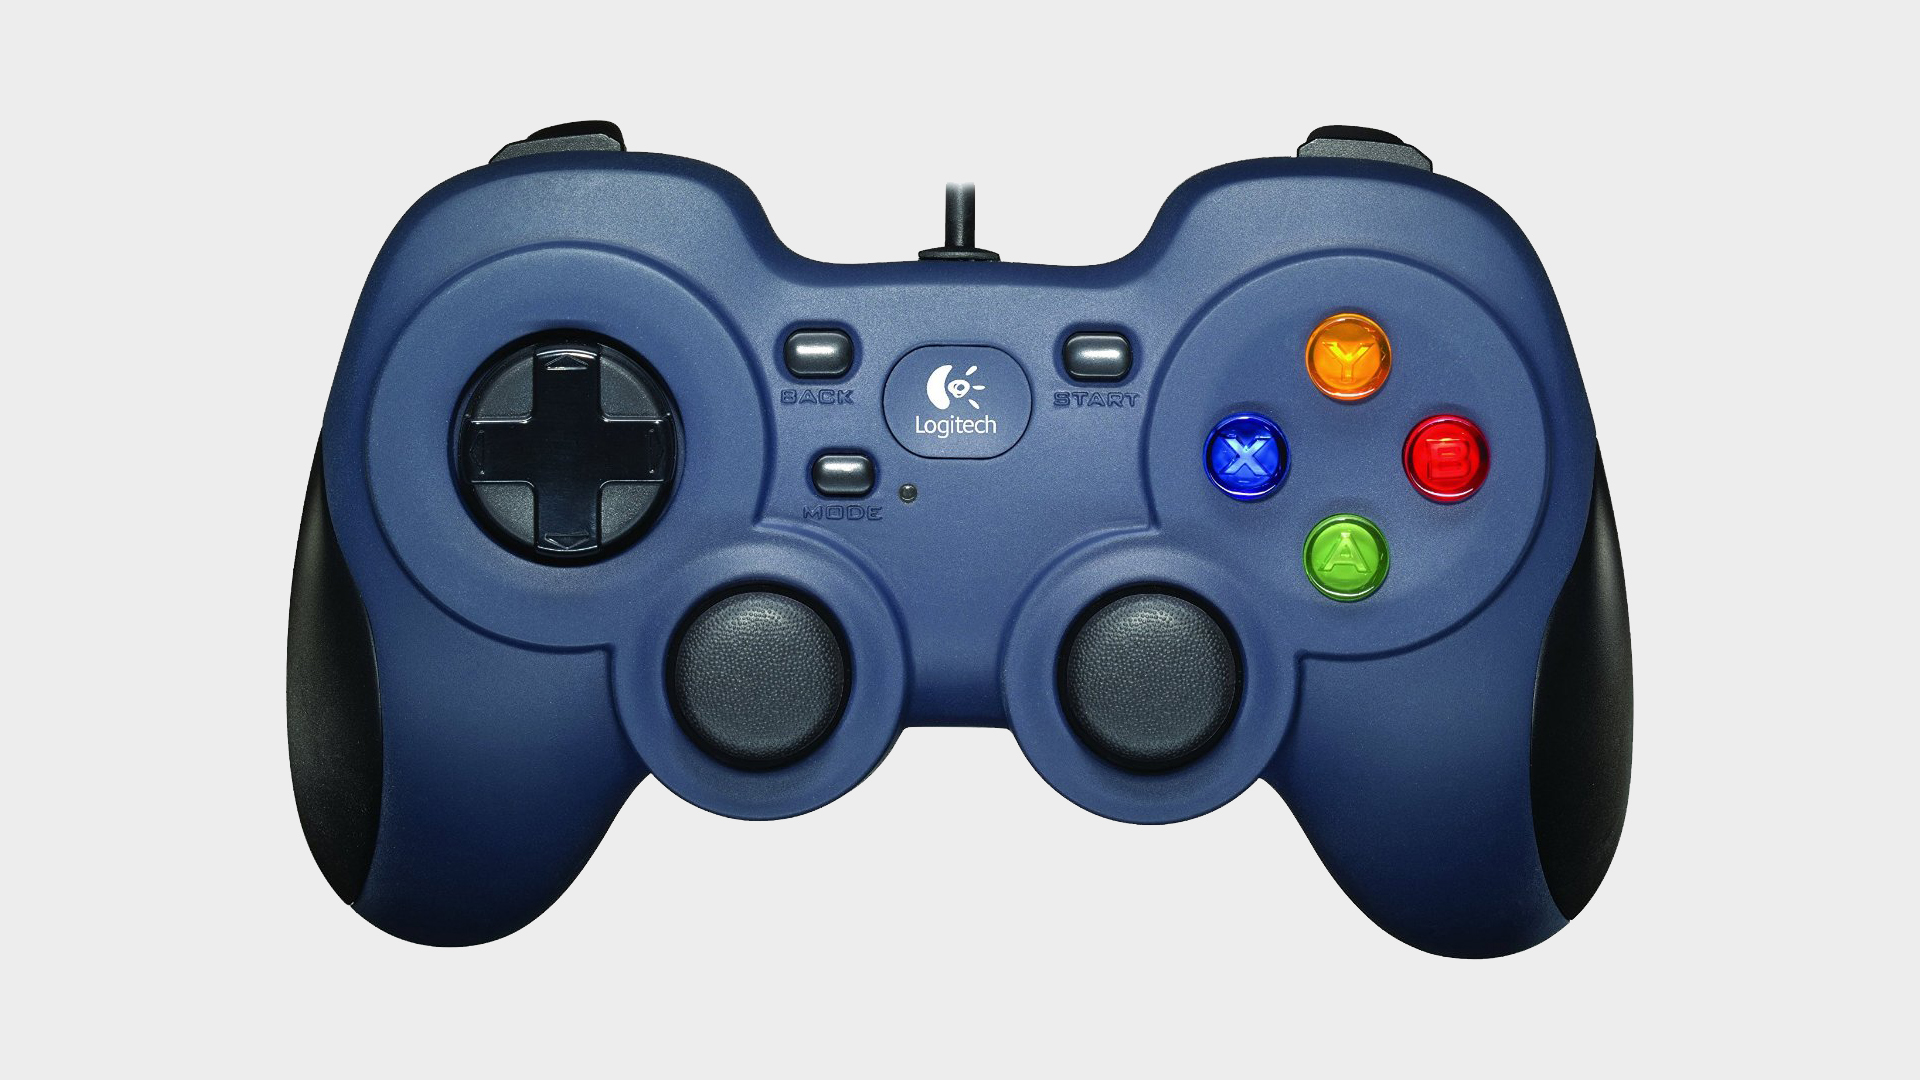 Manette PC Gamer : Comparatif Meilleure Manette PC Gaming 2019